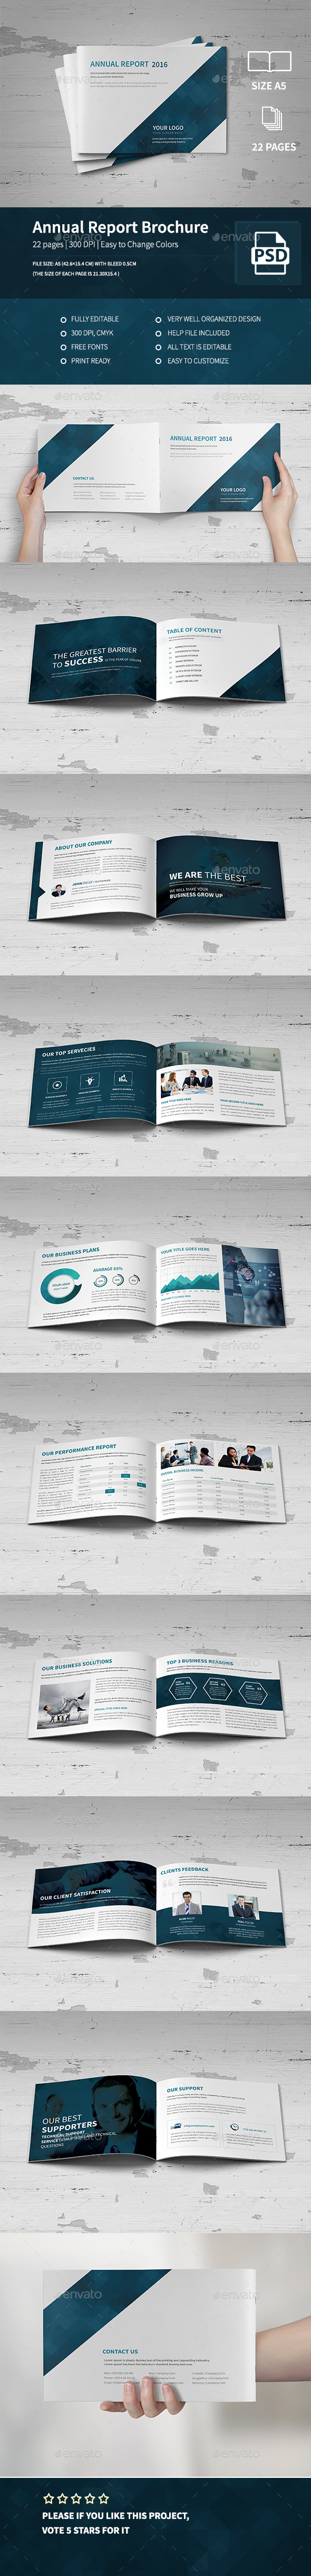 Annual Report Brochure 2016 - Corporate Brochures